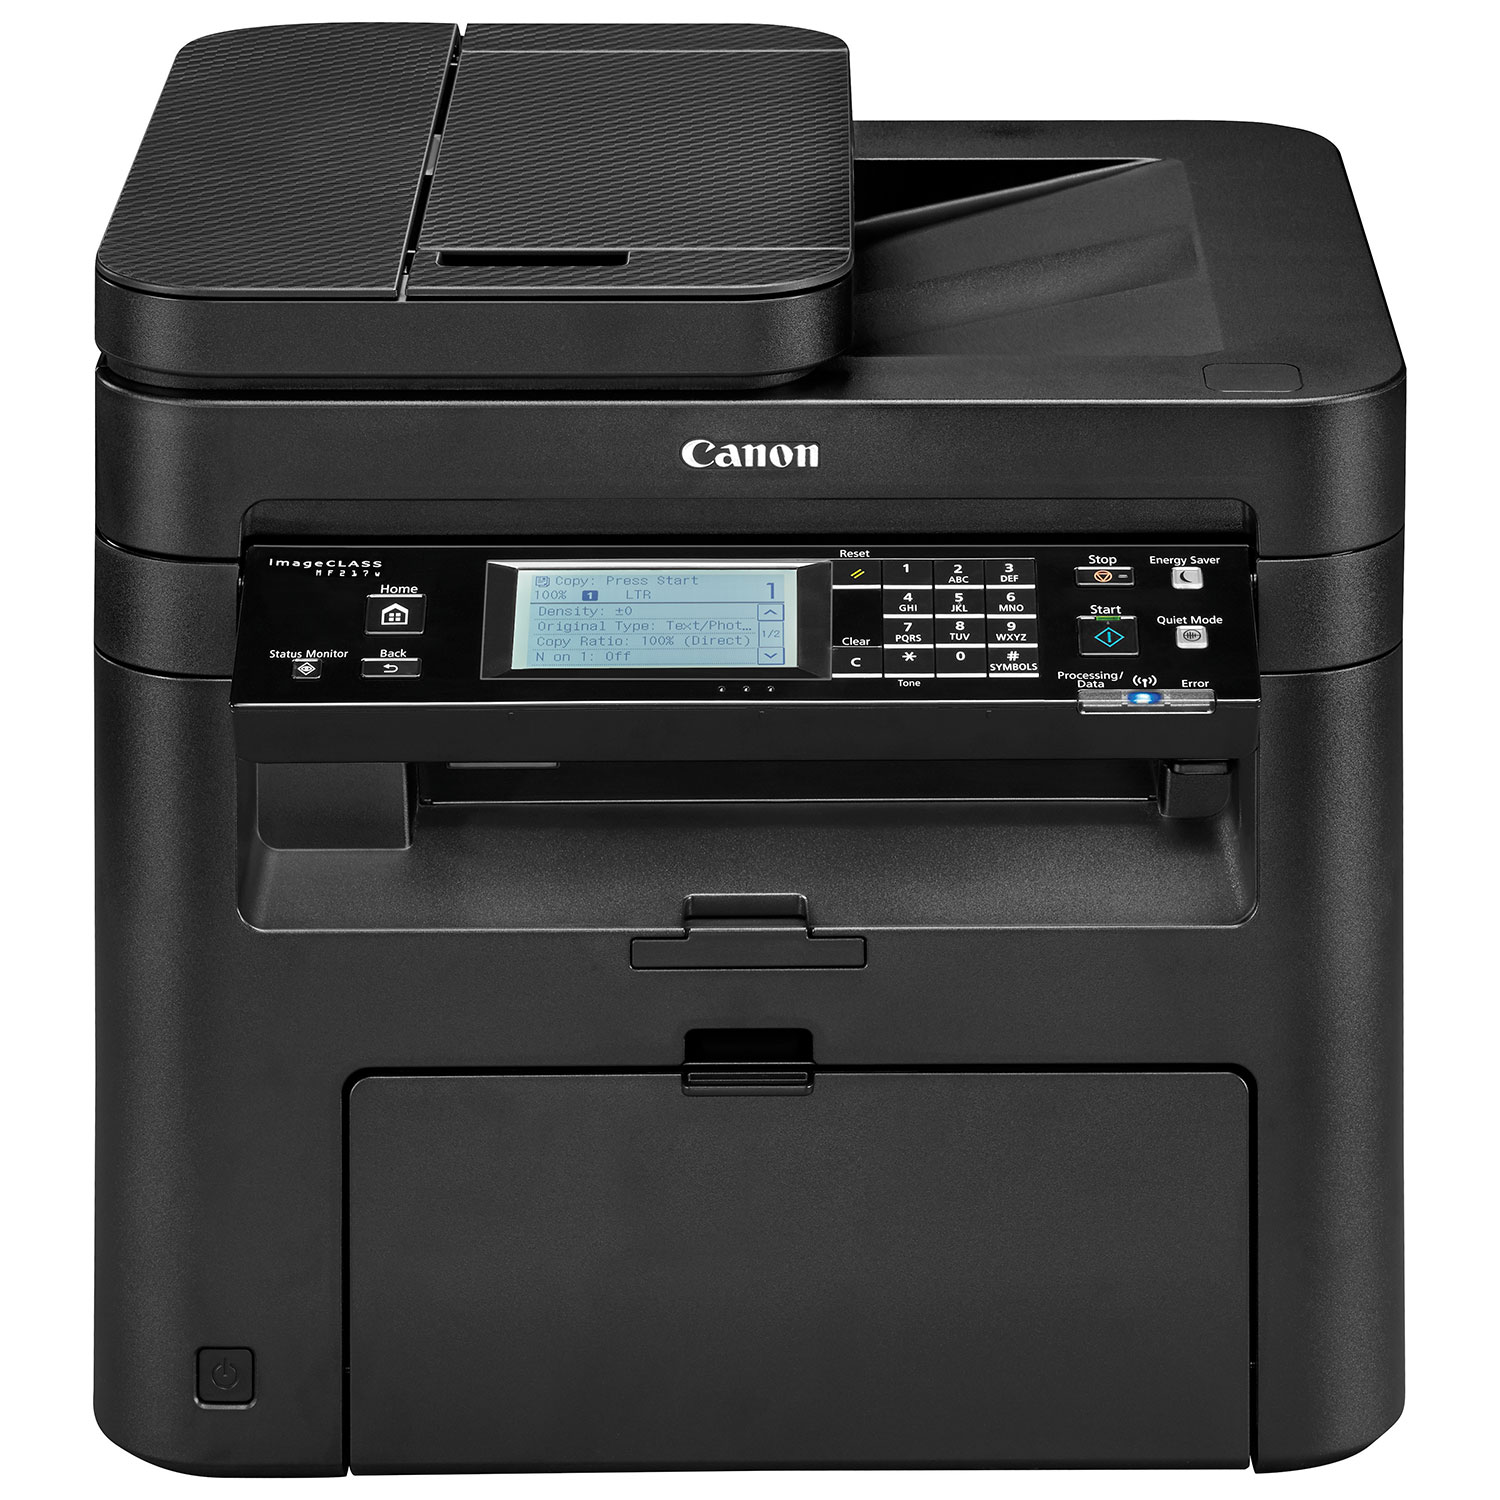 Canon ImageCLASS Monochrome Wireless All In One Laser Printer MF217W Printers